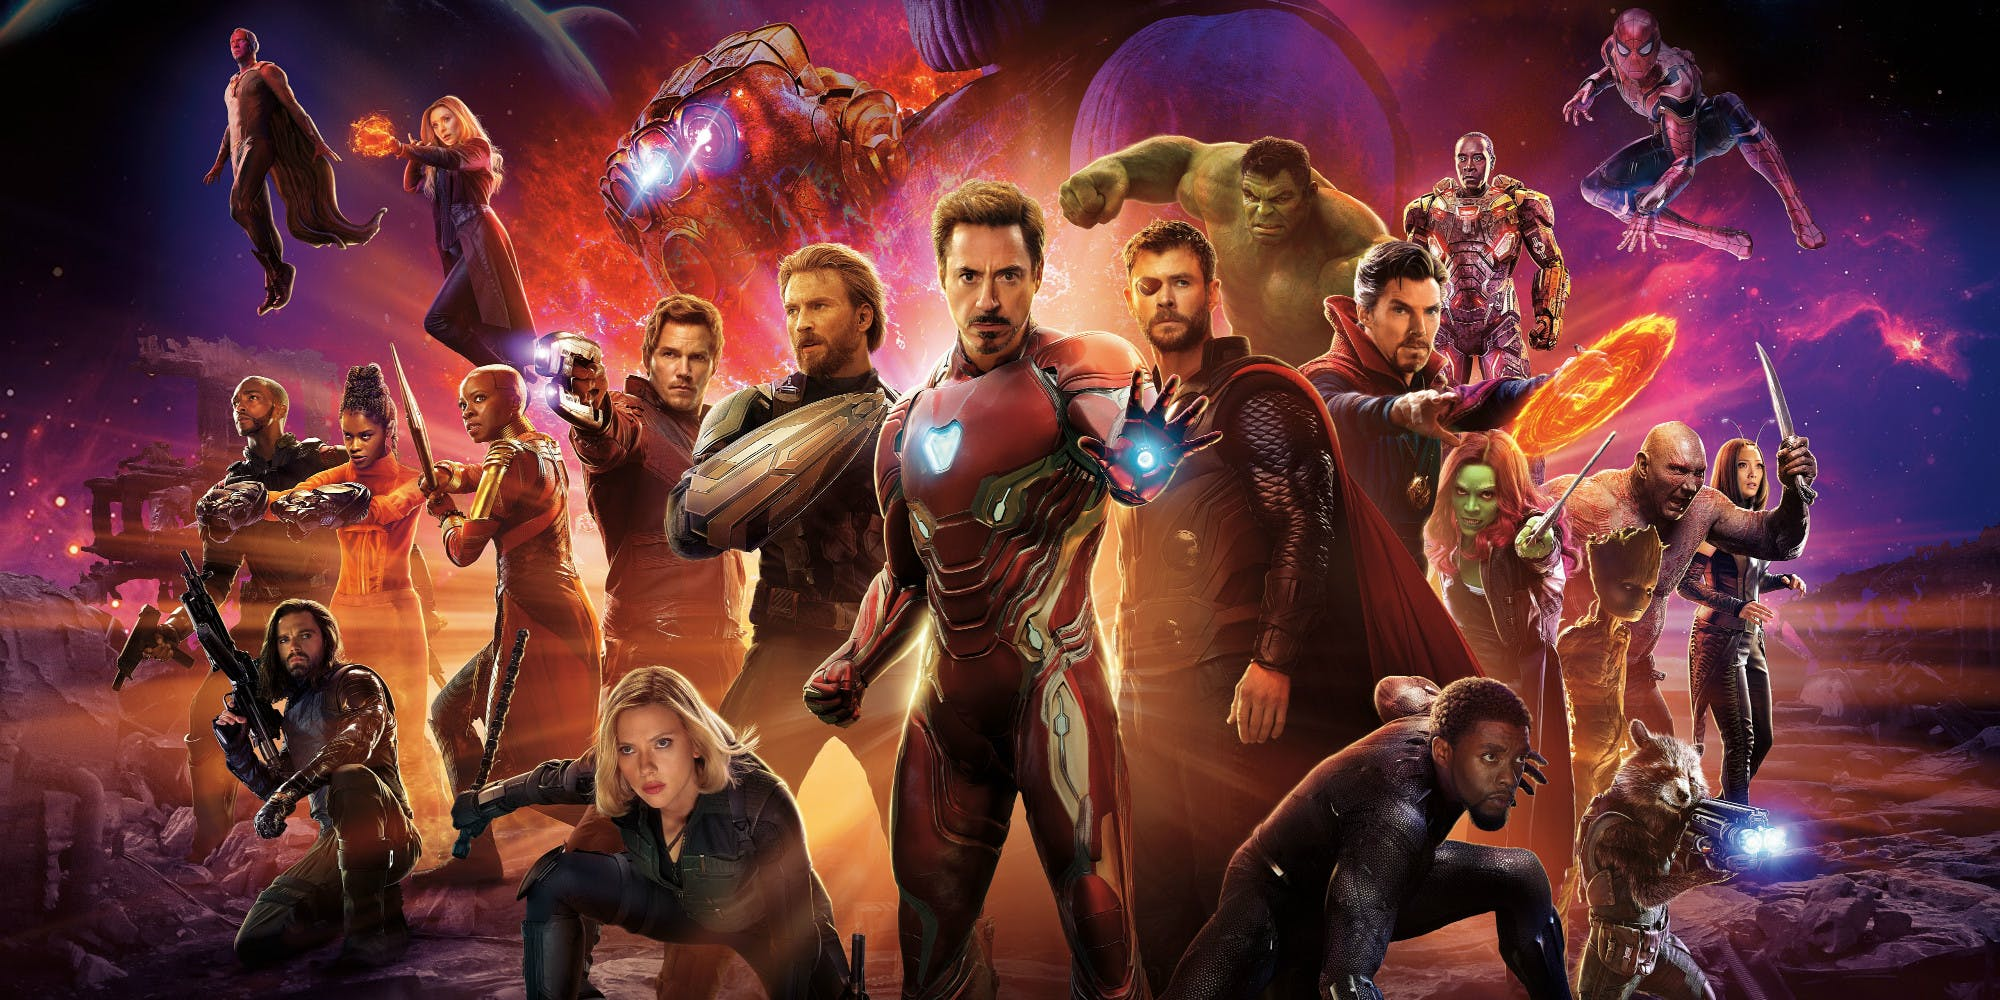 New Avengers Movie 2018: Kevin Feige Comments On [SPOILERS] Death In Avengers